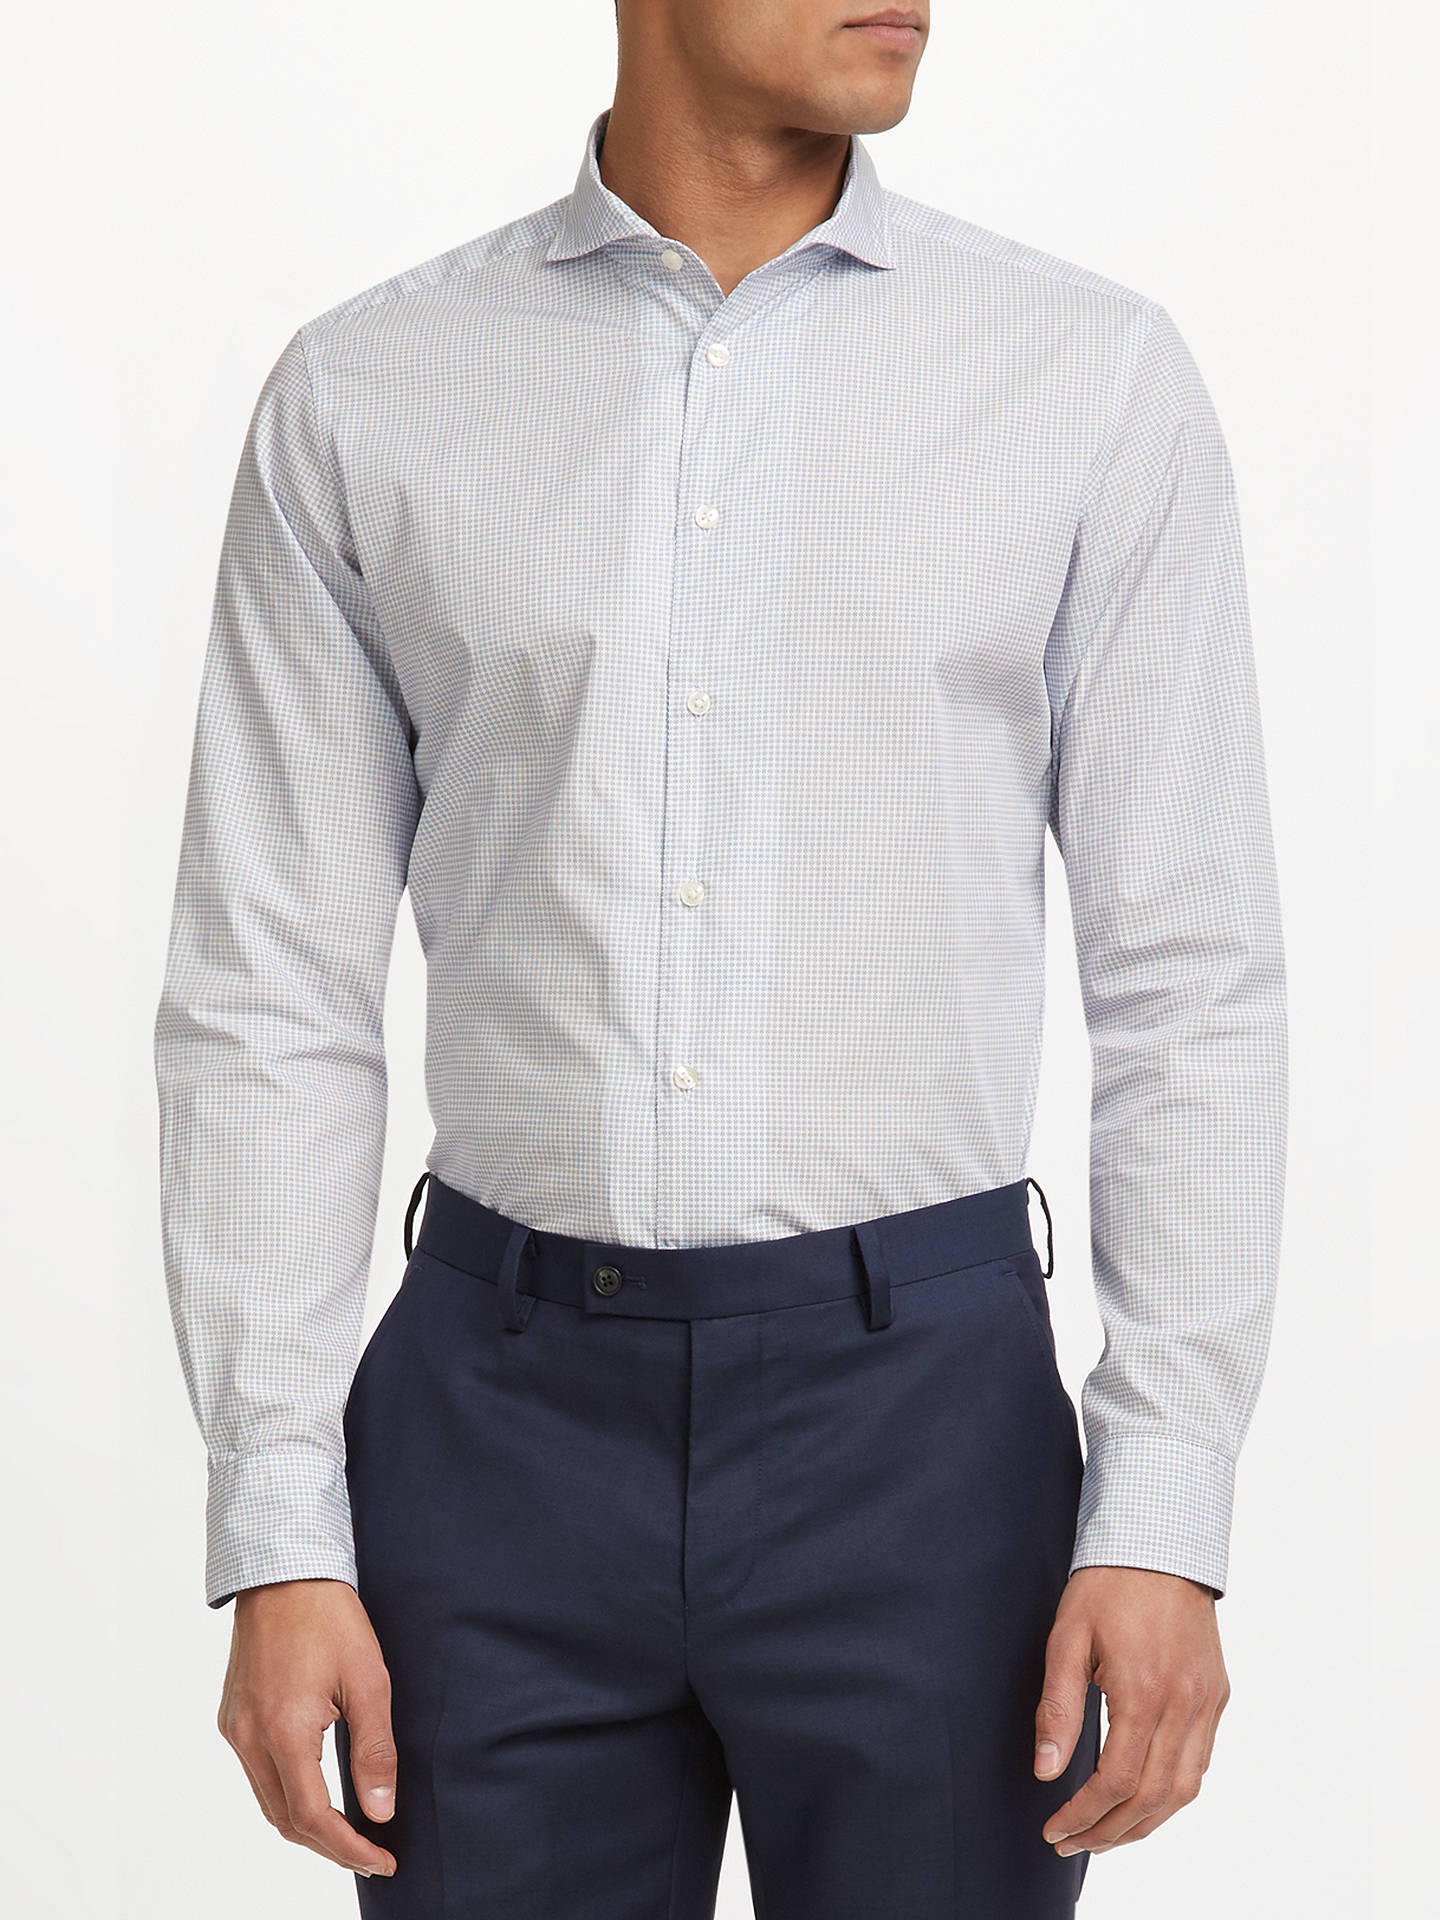 BuyJohn Lewis Woven in Italy Ditsy Print Tailored Fit Shirt, White/Blue, 15 Online at johnlewis.com